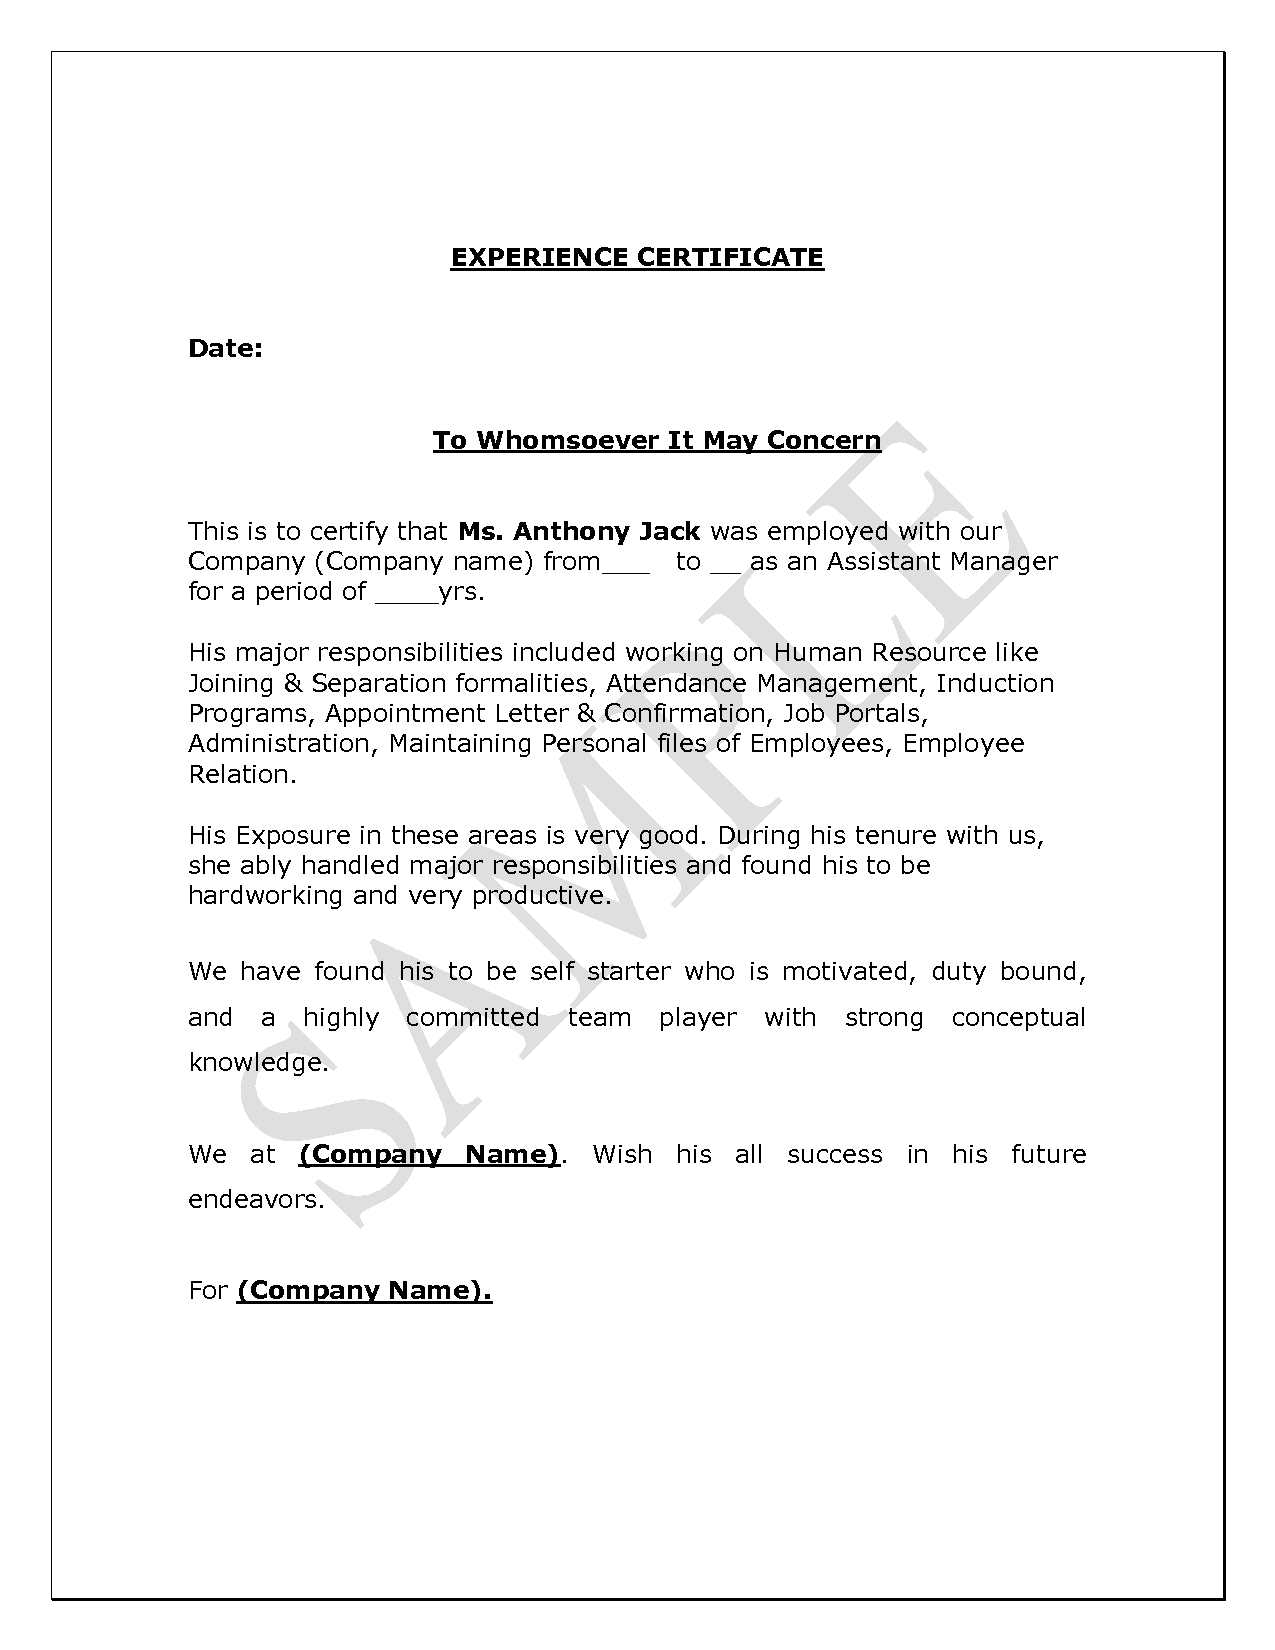 Work Experience Certificate Template Word  Certificatetemplateword Regarding Certificate Of Experience Template